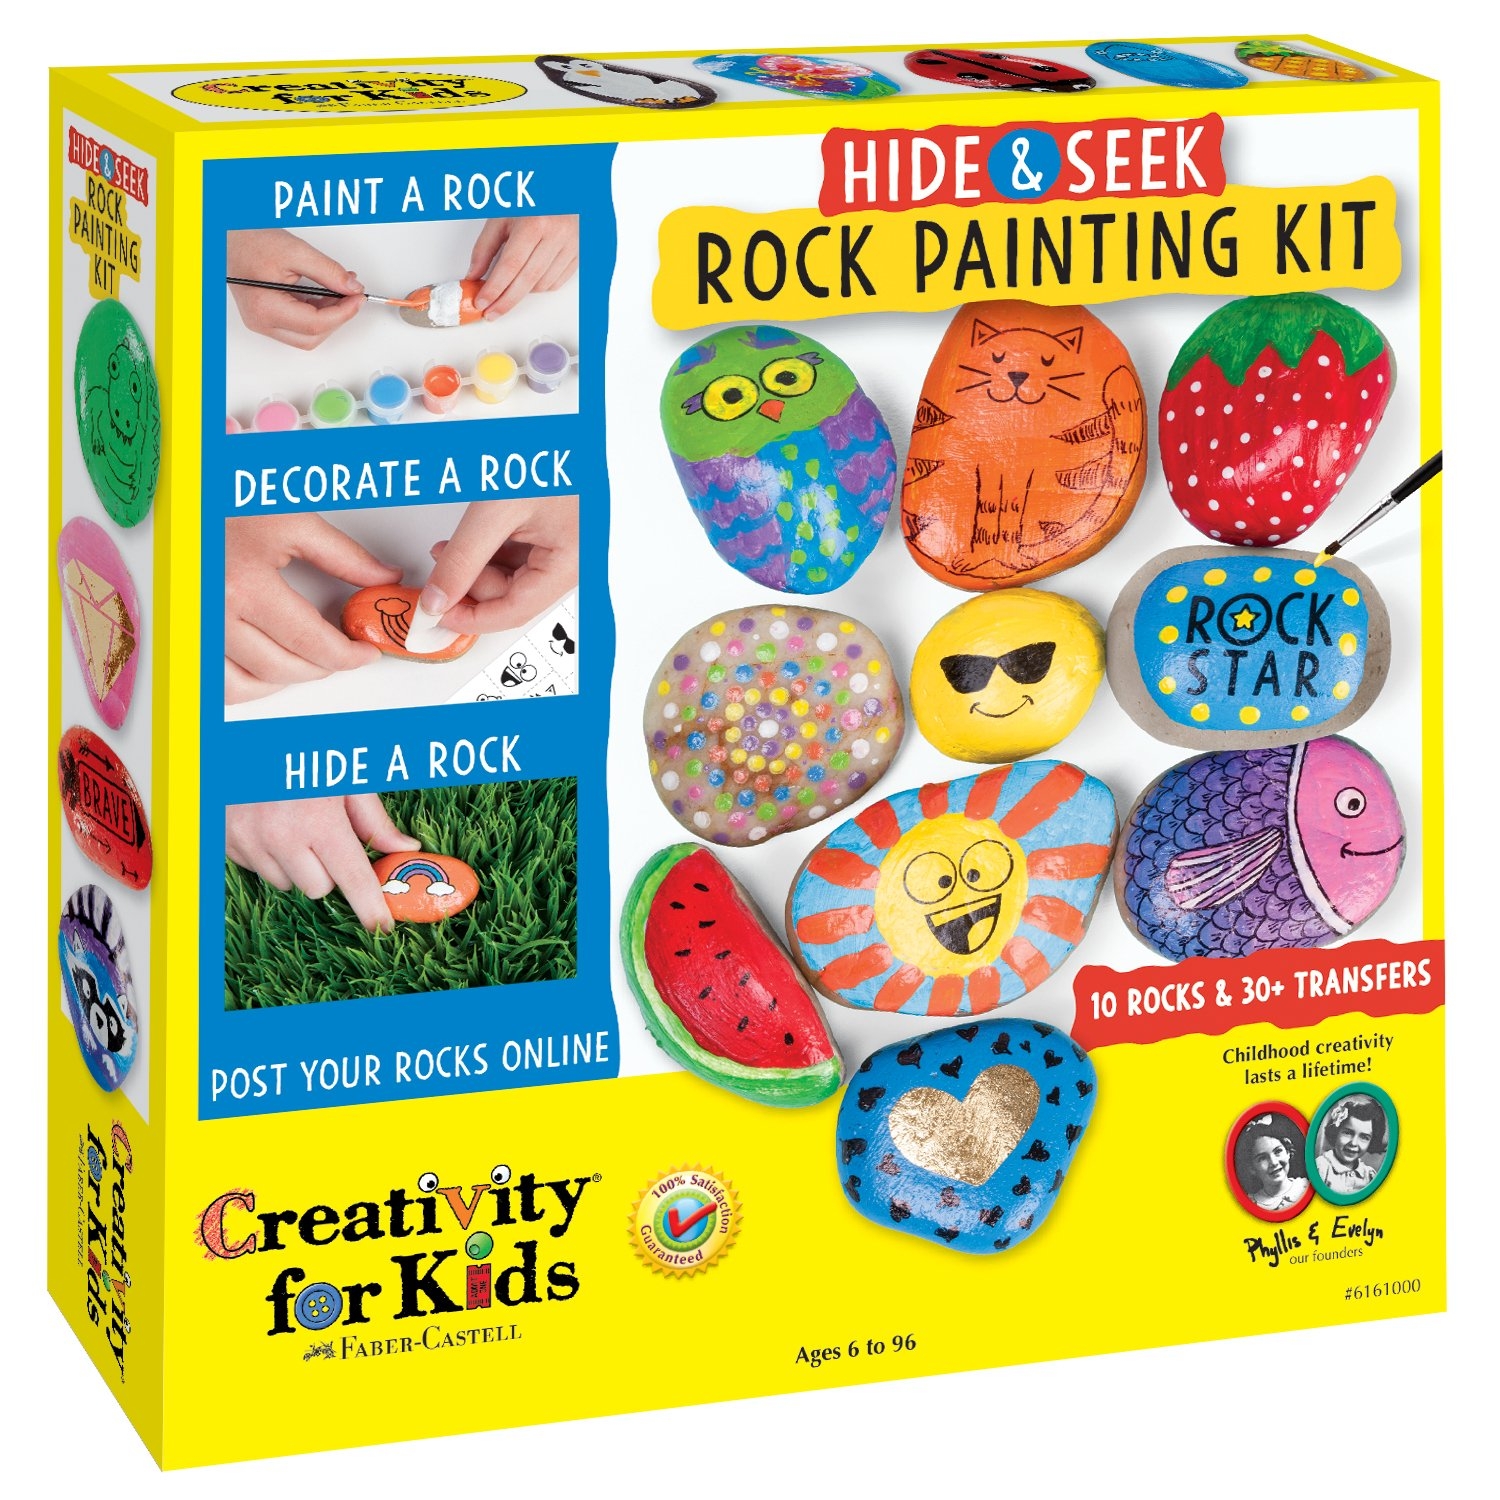 Creativity for Kids Hide and Seek Rock Painting Kit - Customize 10 Rocks